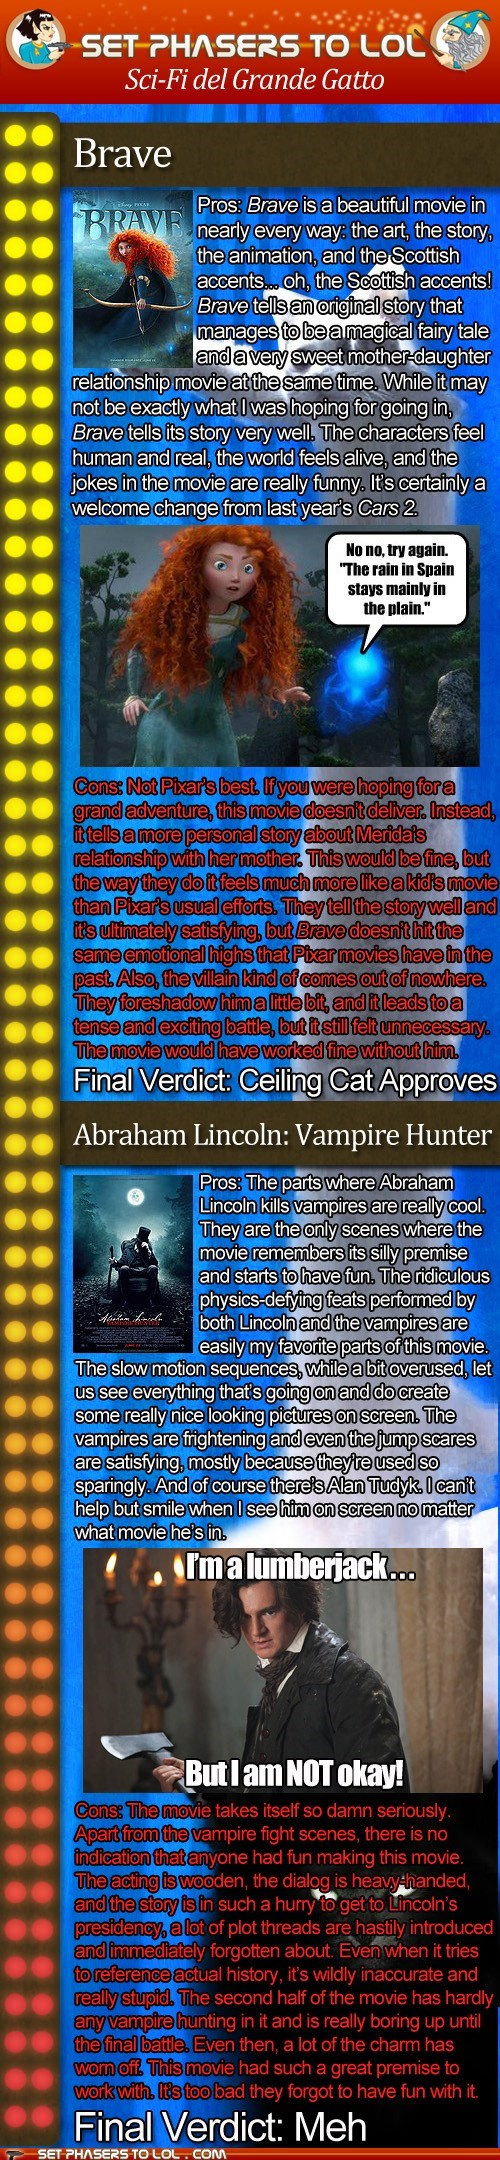 abraham lincoln vampire h alan tudyk benjamin walker brave grande gatto merida movies reviews